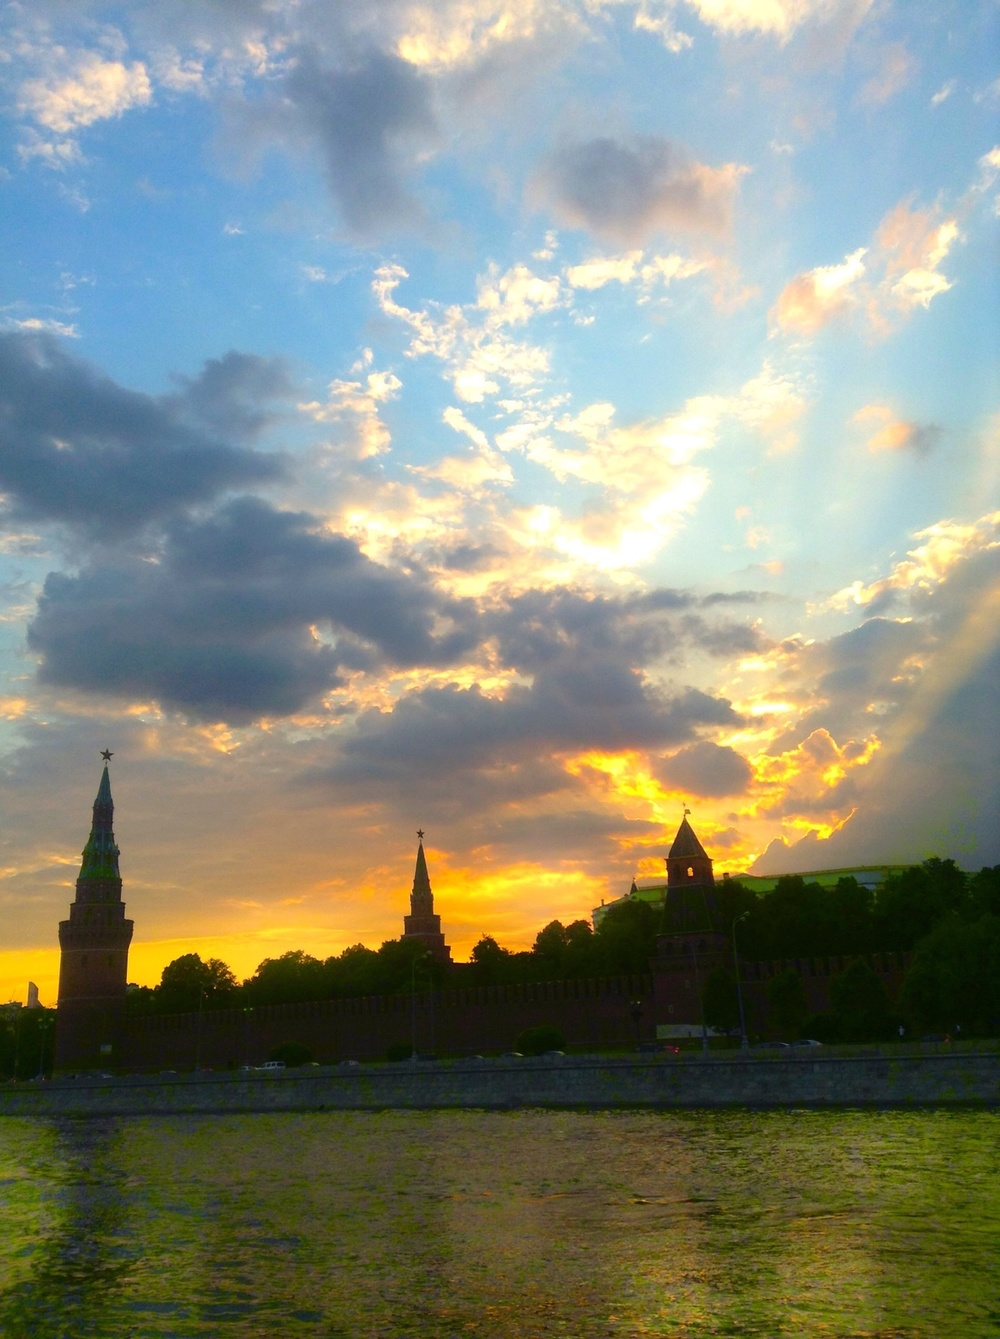 The Kremlin at sunset (mobile).